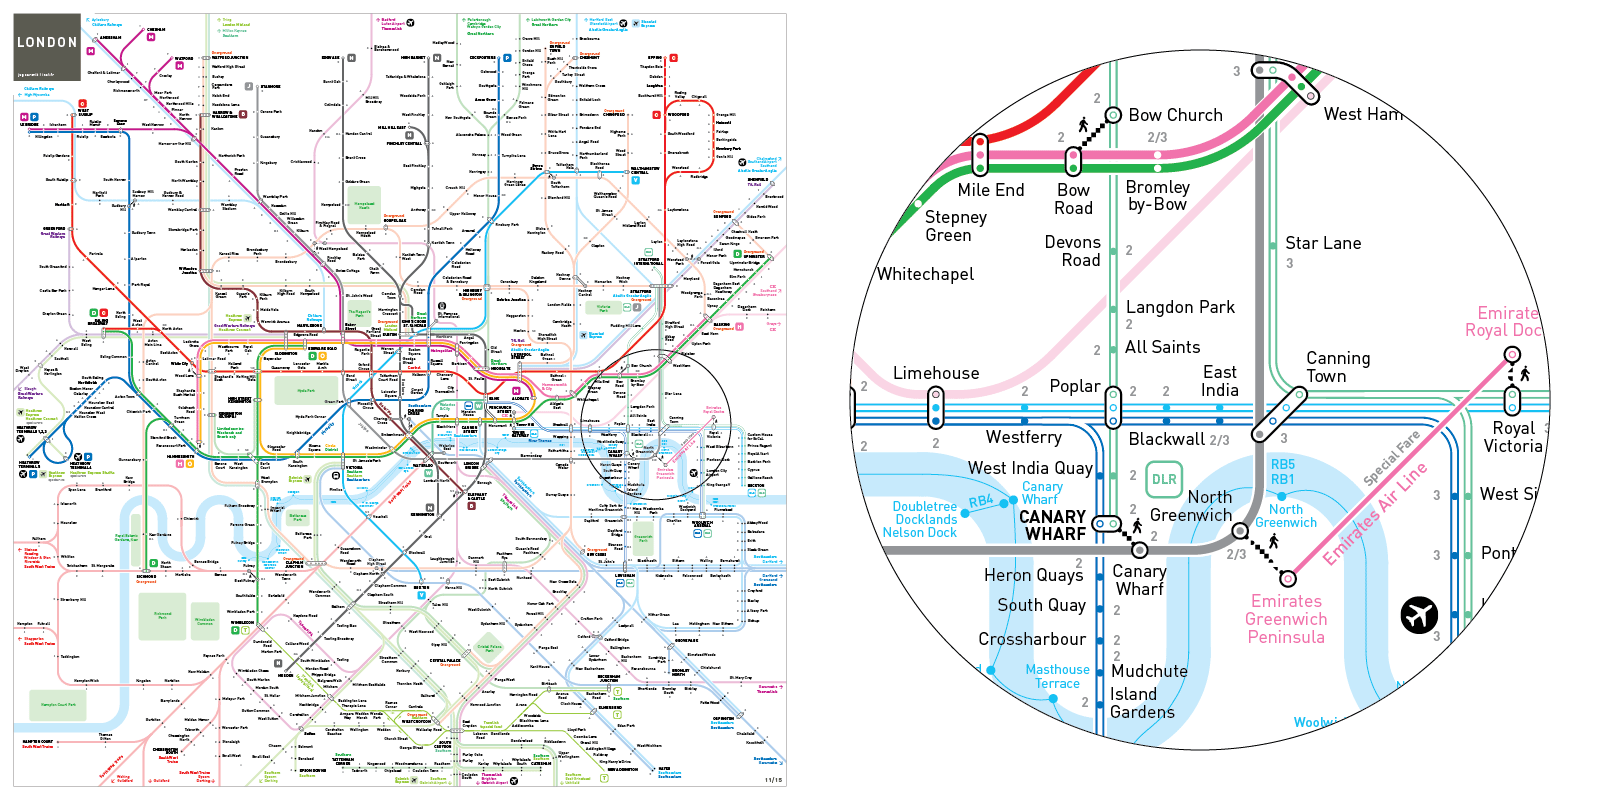 Subway Map Of London.London Underground And Rail Map Inat